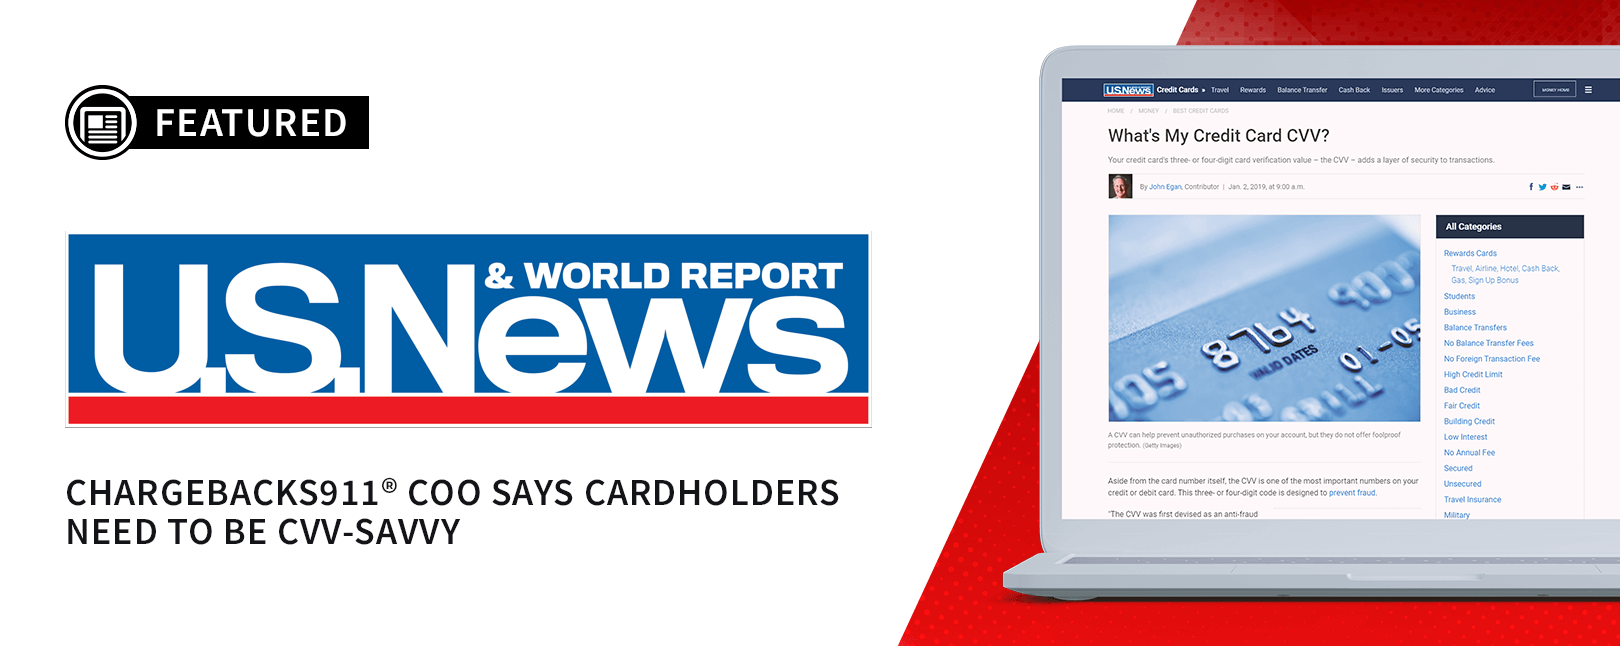 US News and World Report Feature